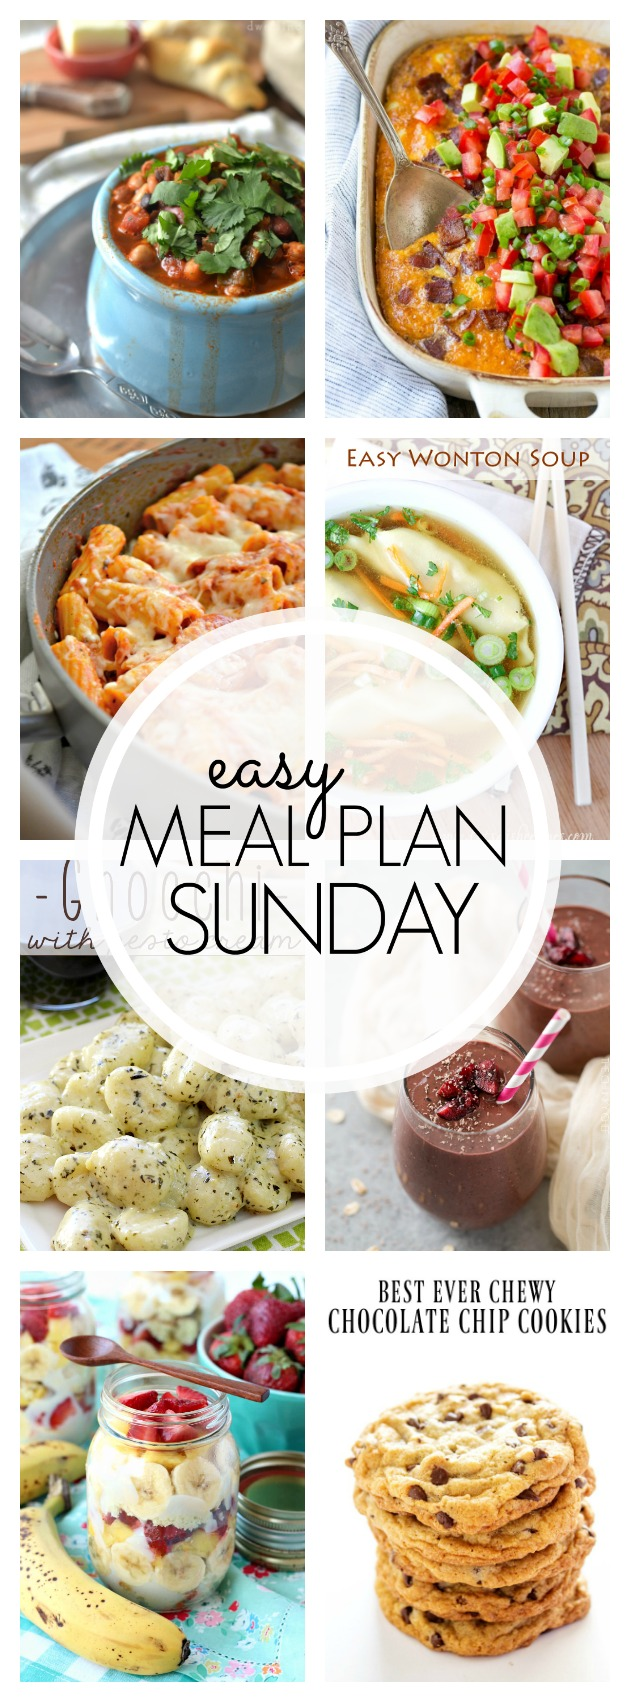 Easy Meal Plan Sunday #86